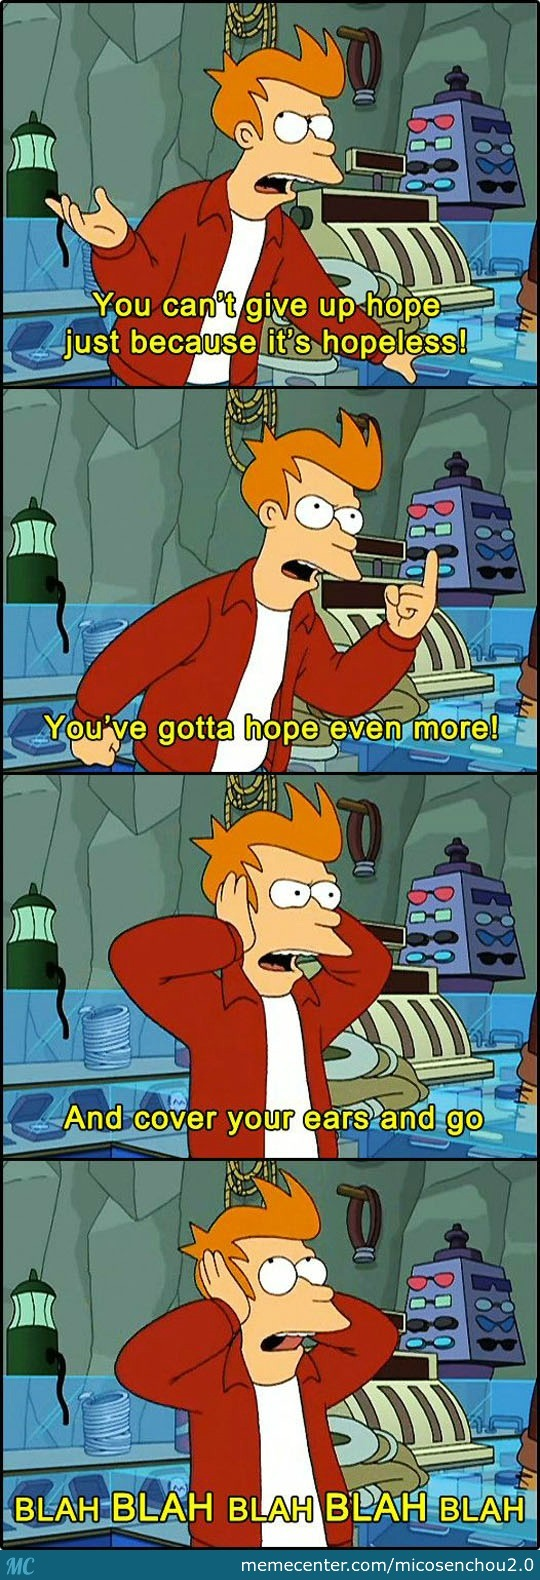 Wise Words From Fry